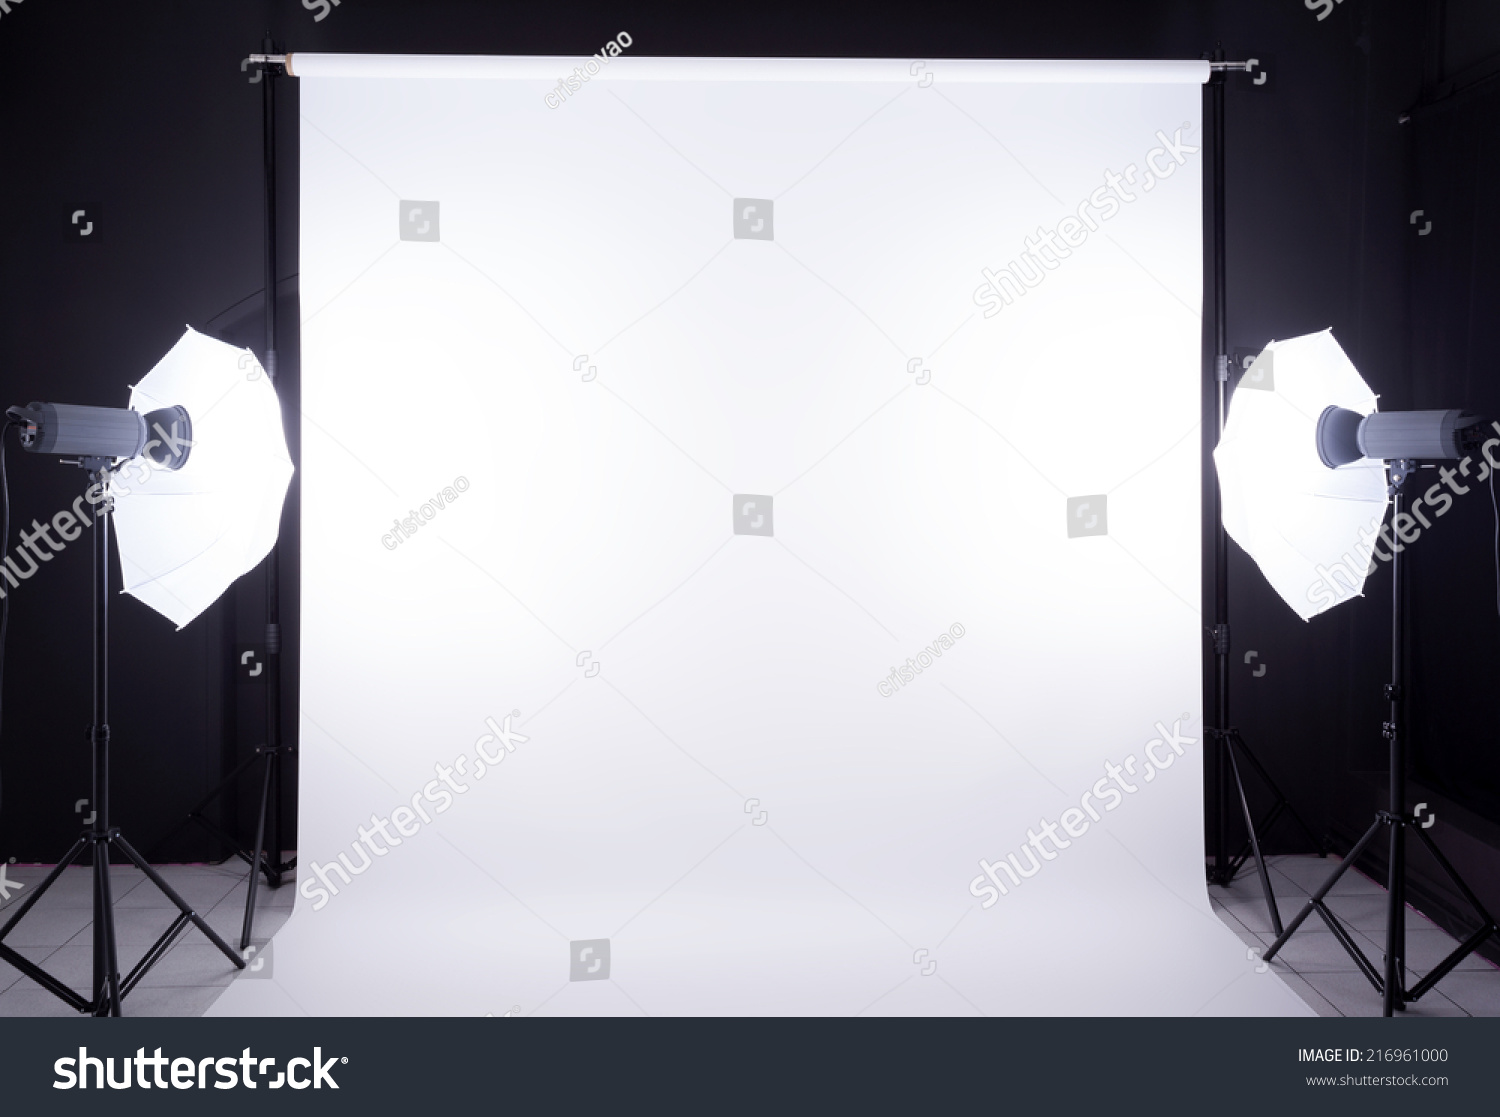 Modern photo studio with lighting equipment